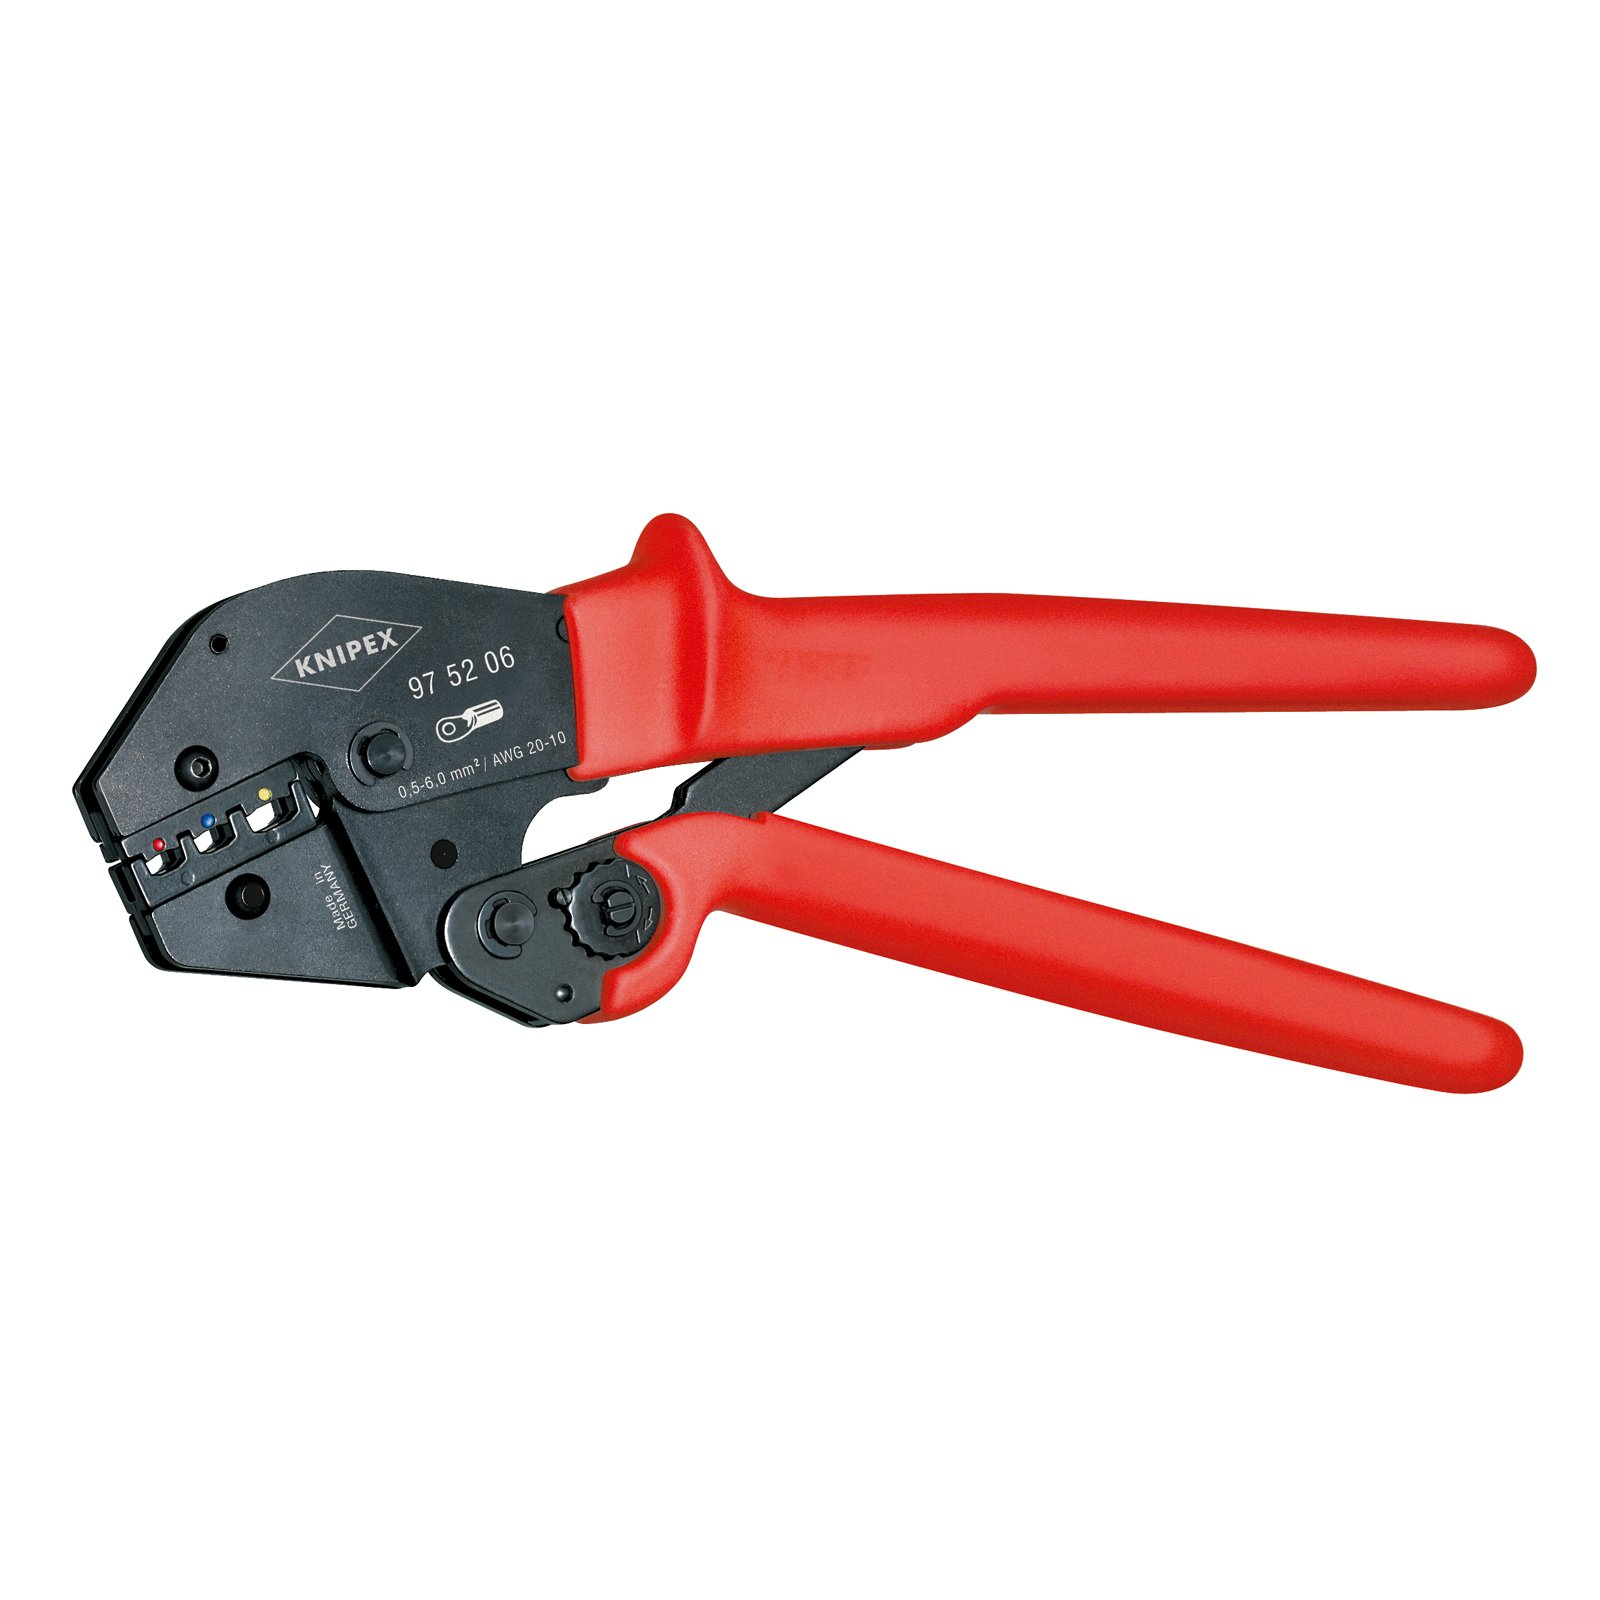 Knipex 97 52 06 0,5-6mm Crimping Pliers for insulated terminals by KNIPEX Tools